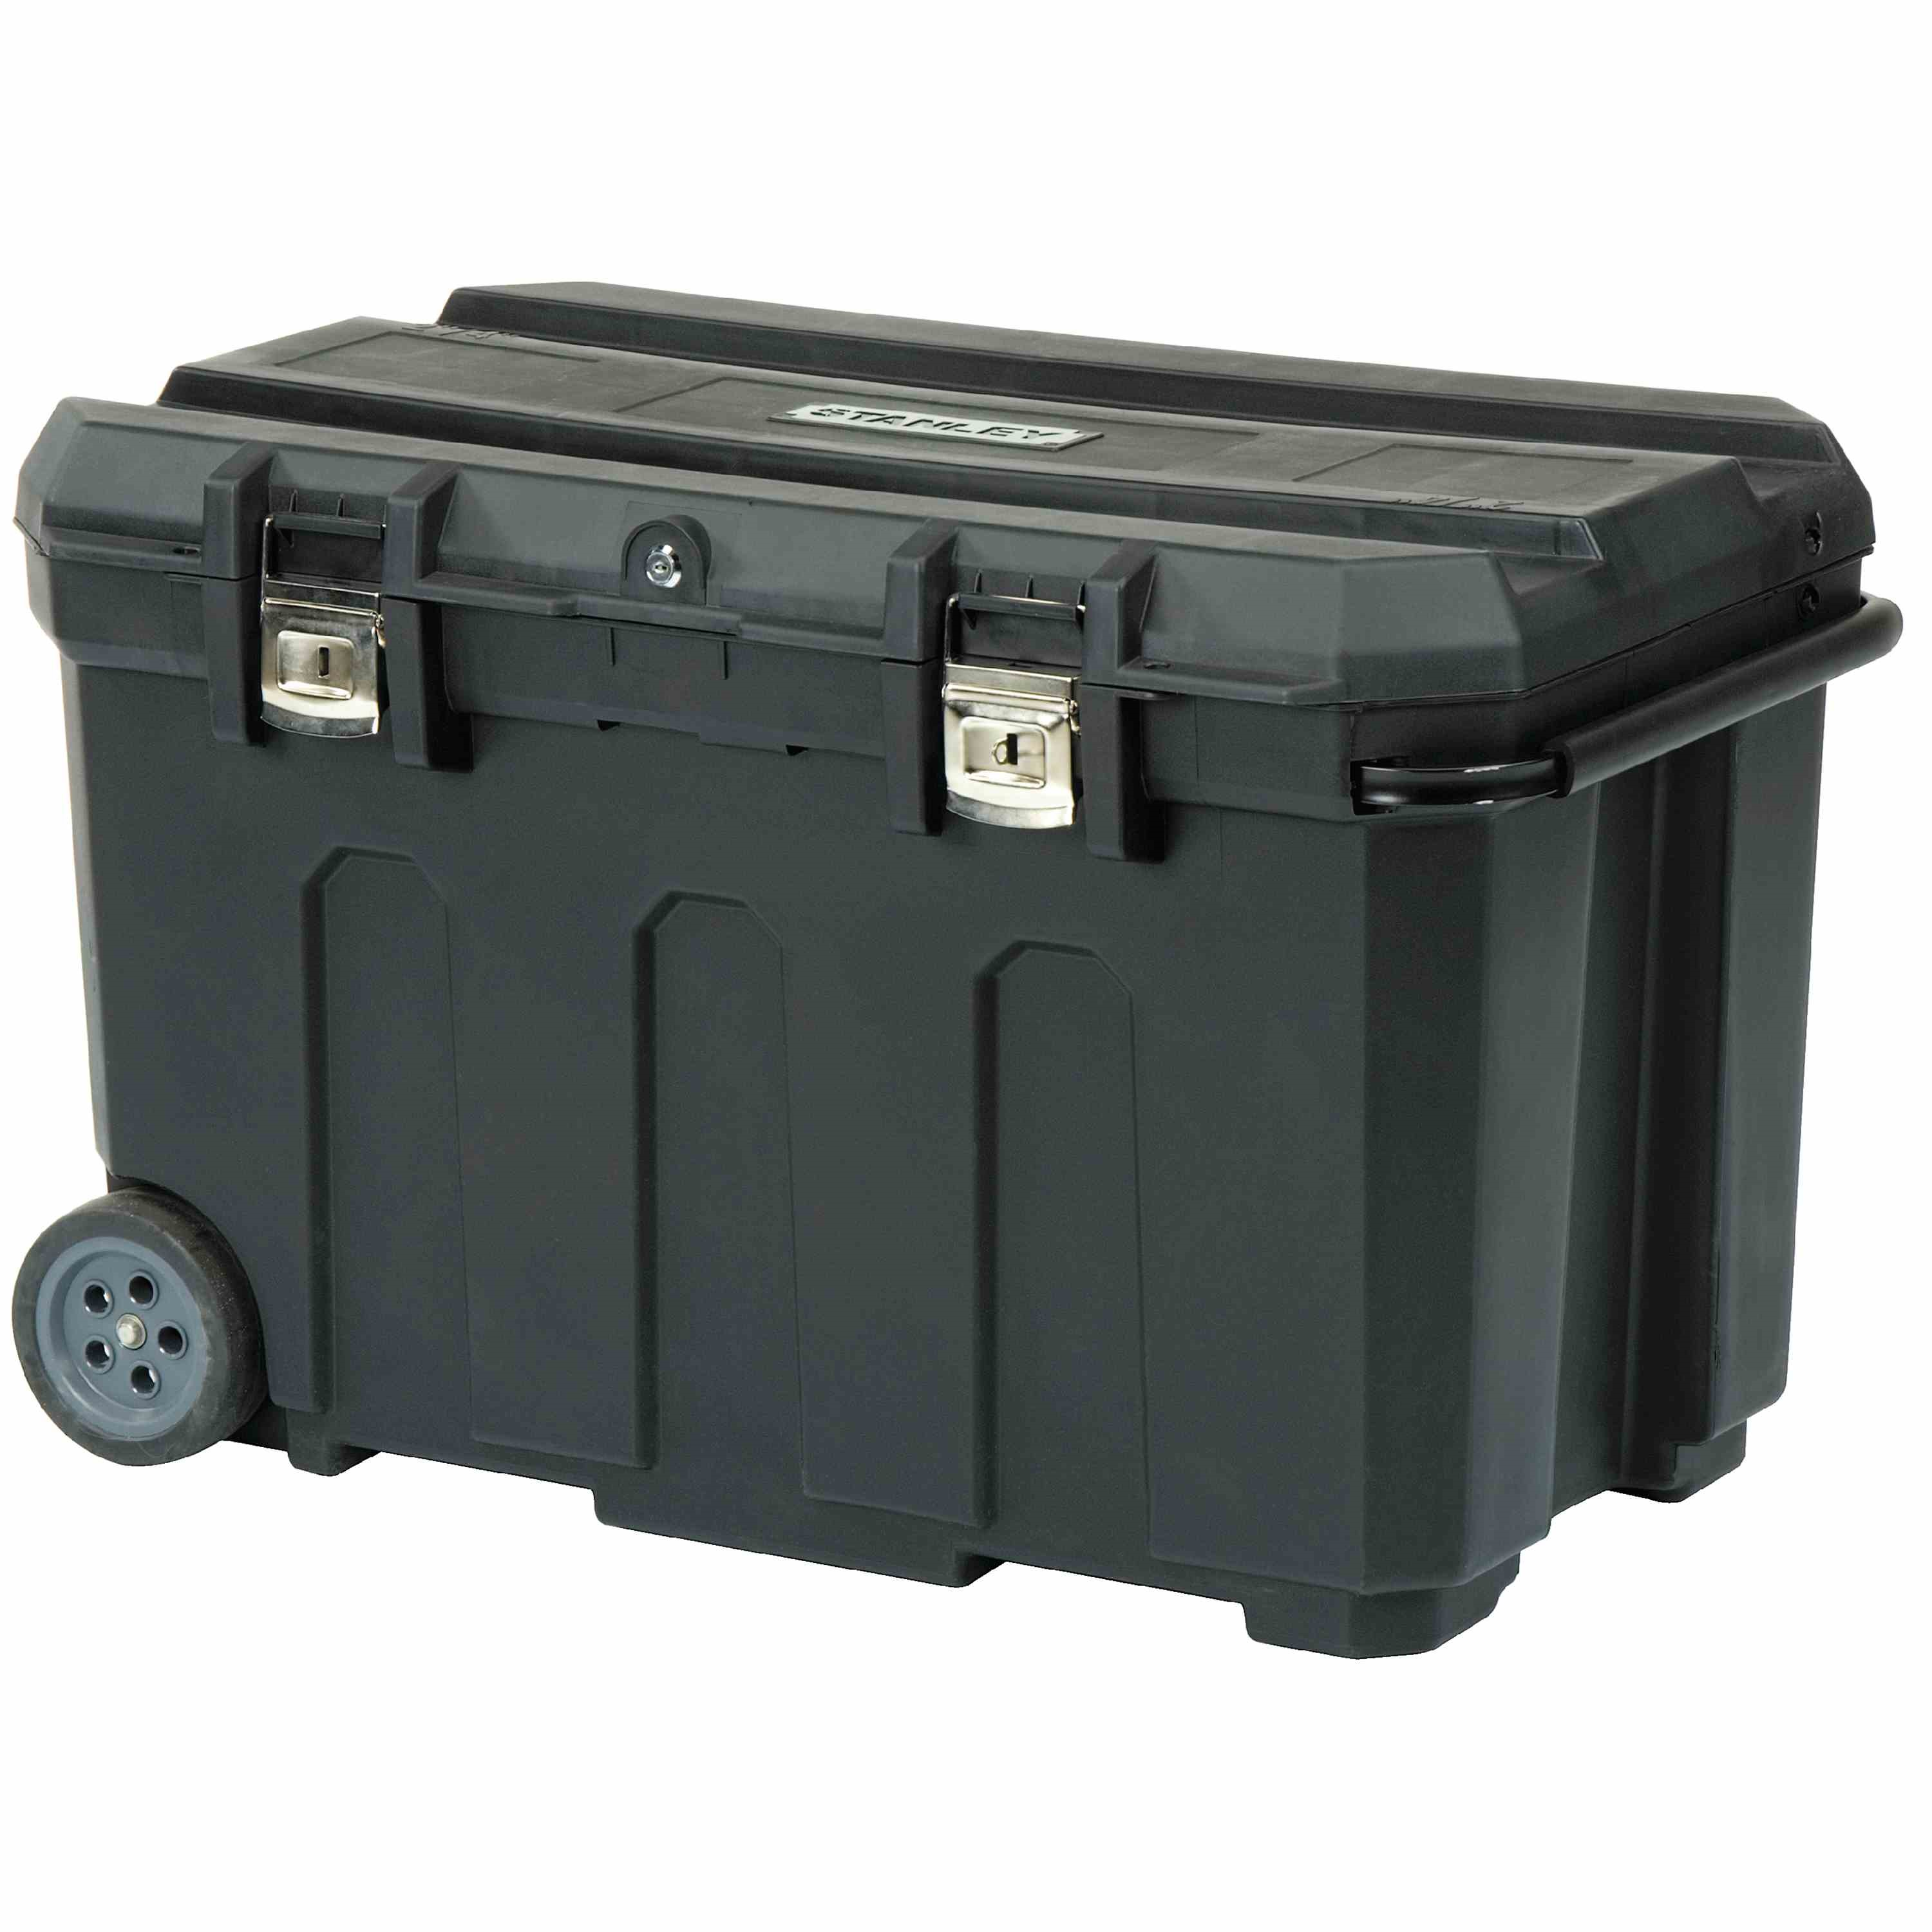 Stanley Tools - 50 Gallon Mobile Tool Chest - 037025H